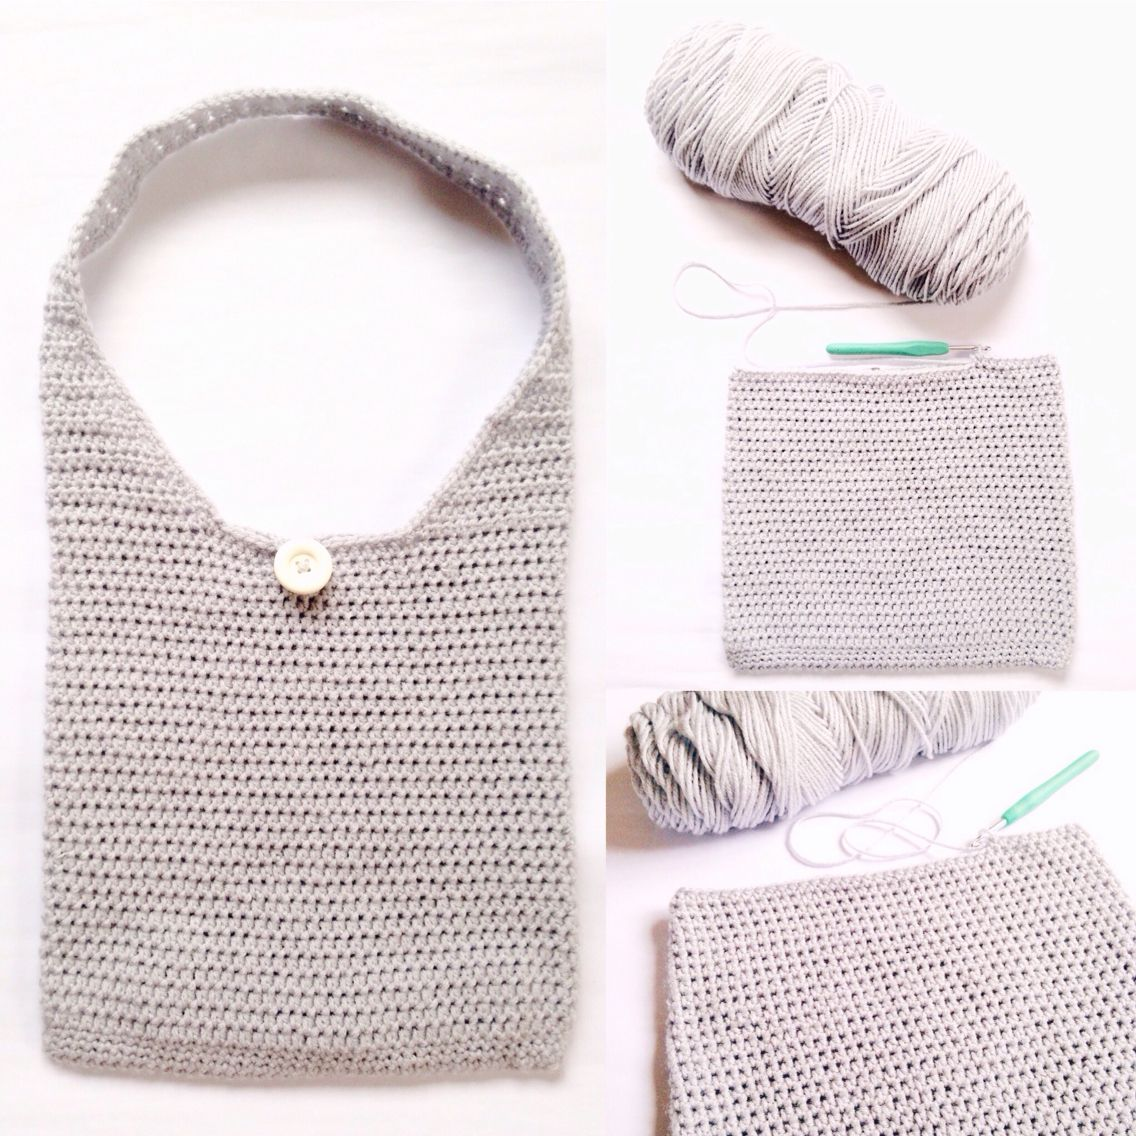 Super easy crochet tote bag! I just used half a skein of Redheart ...